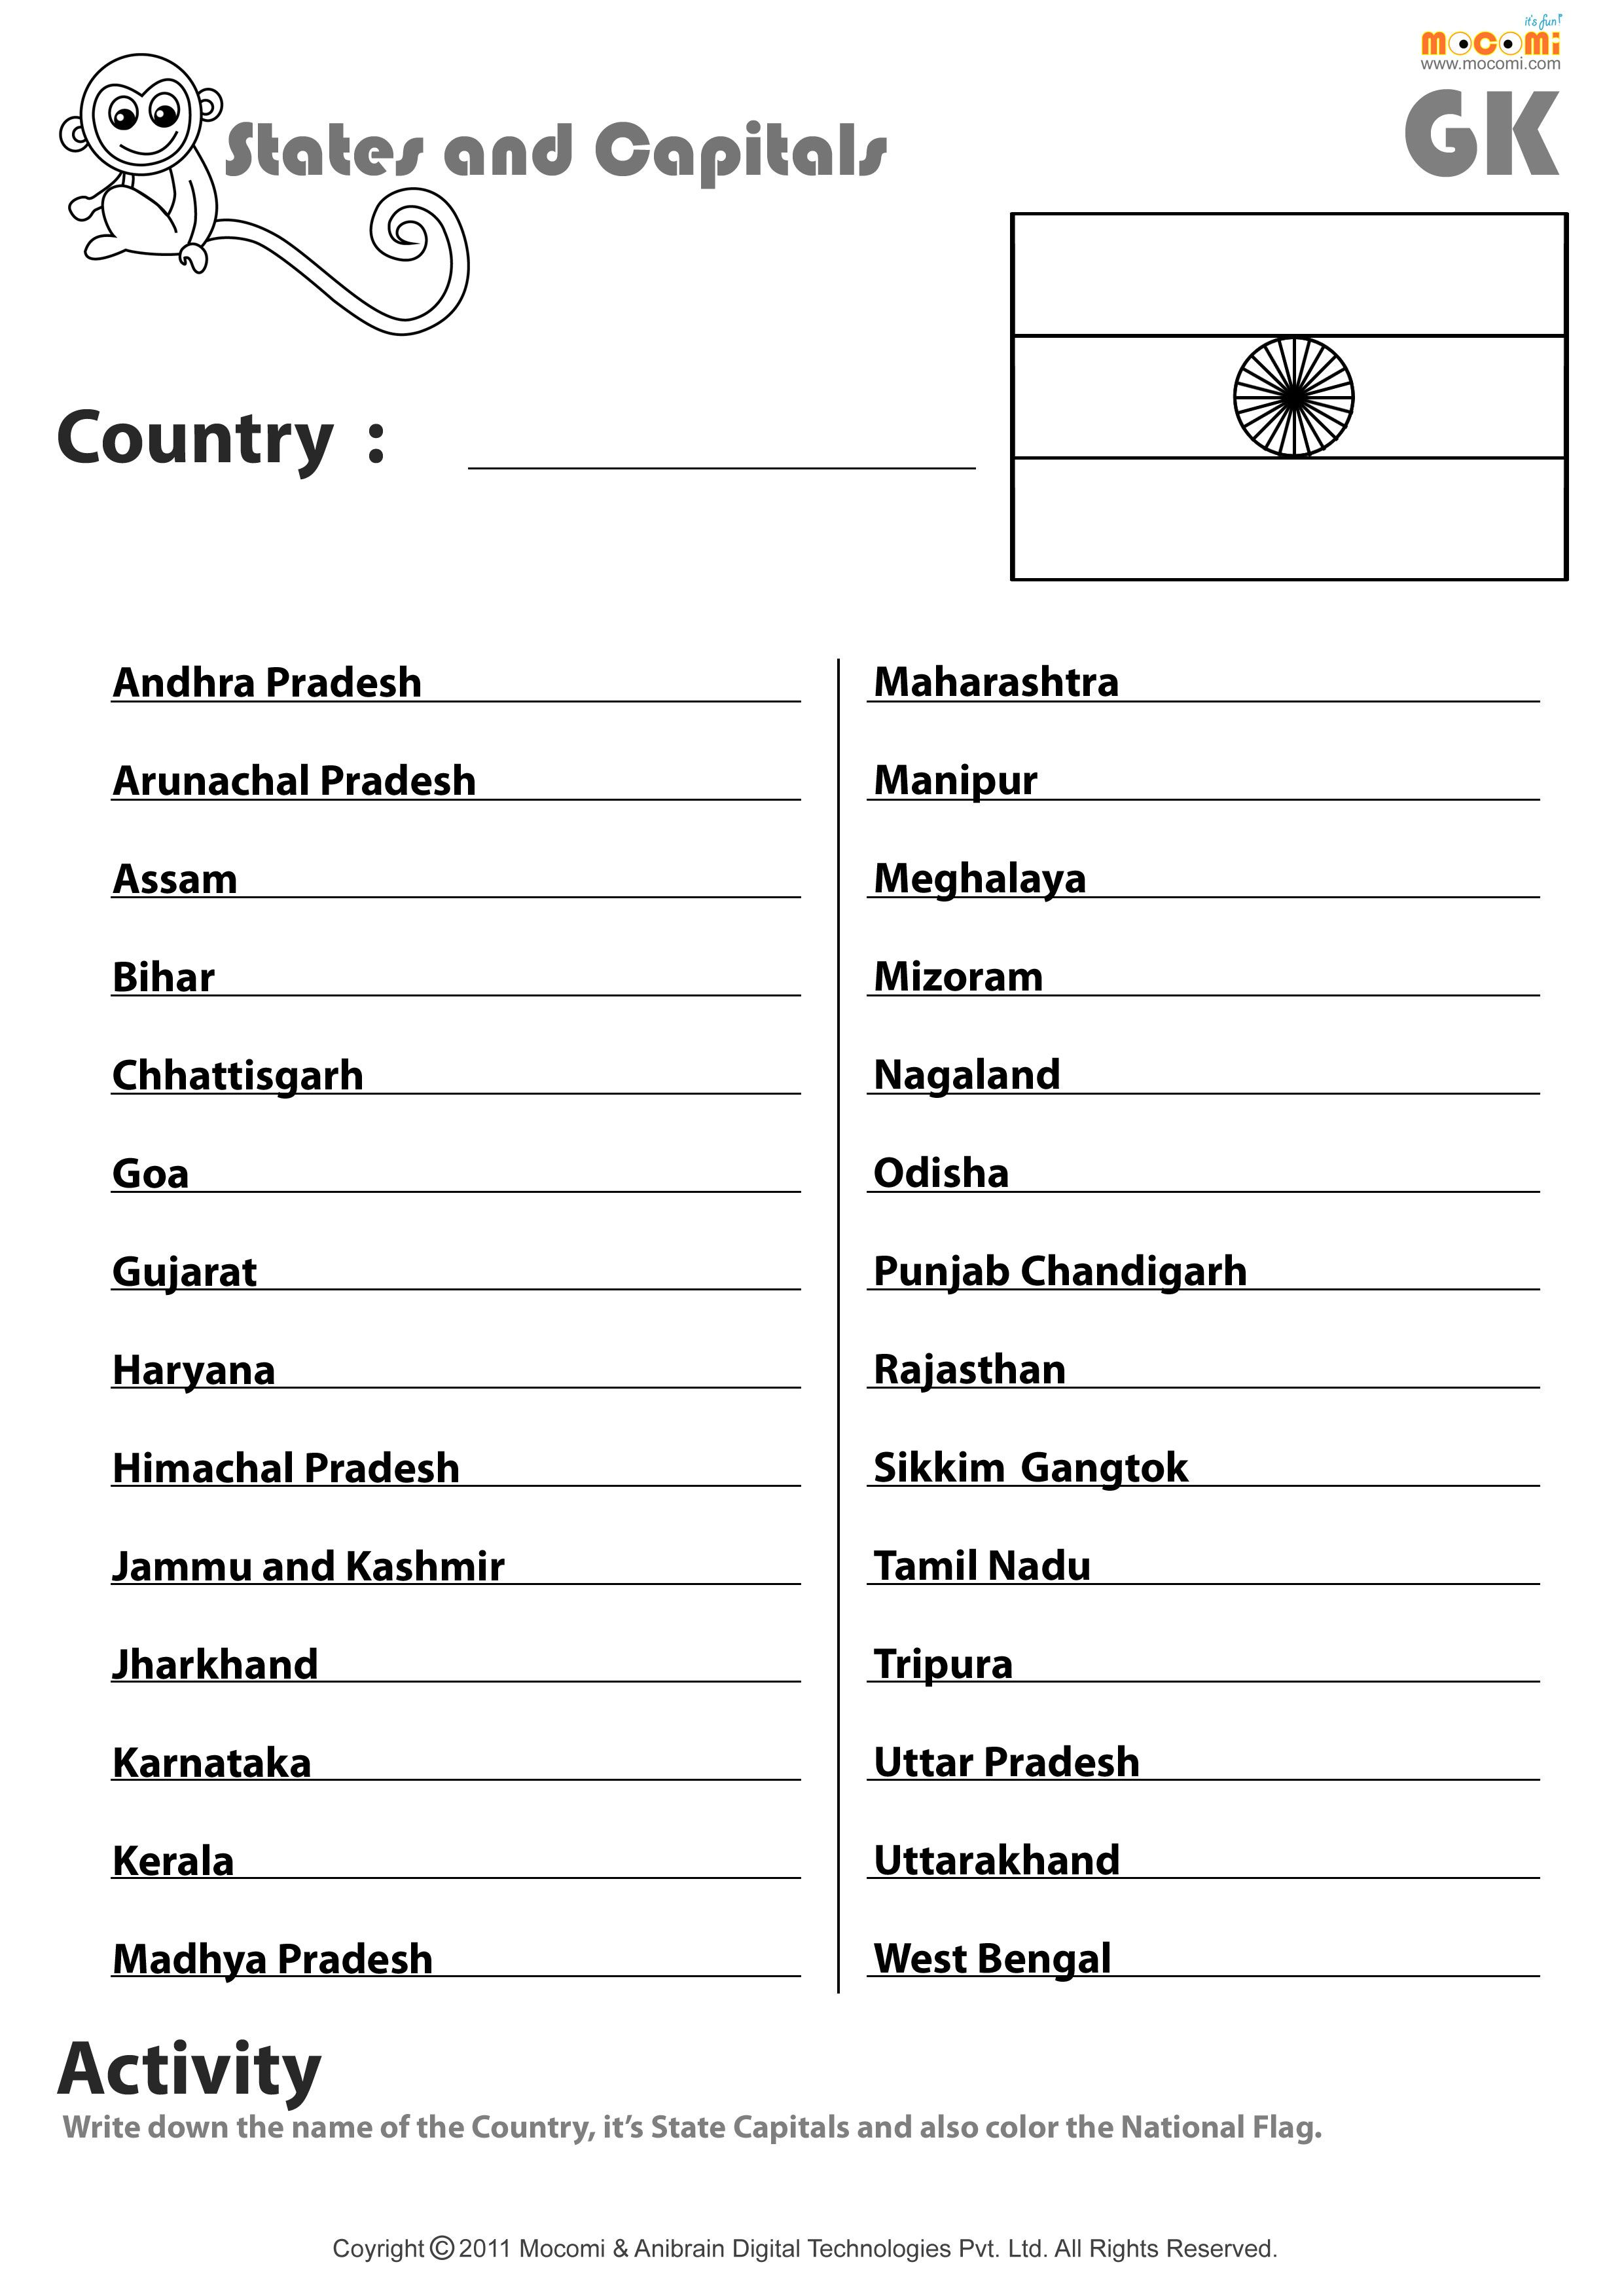 Worksheets State Capitals Worksheet indian states and their capitals english worksheets for kids state worksheet more